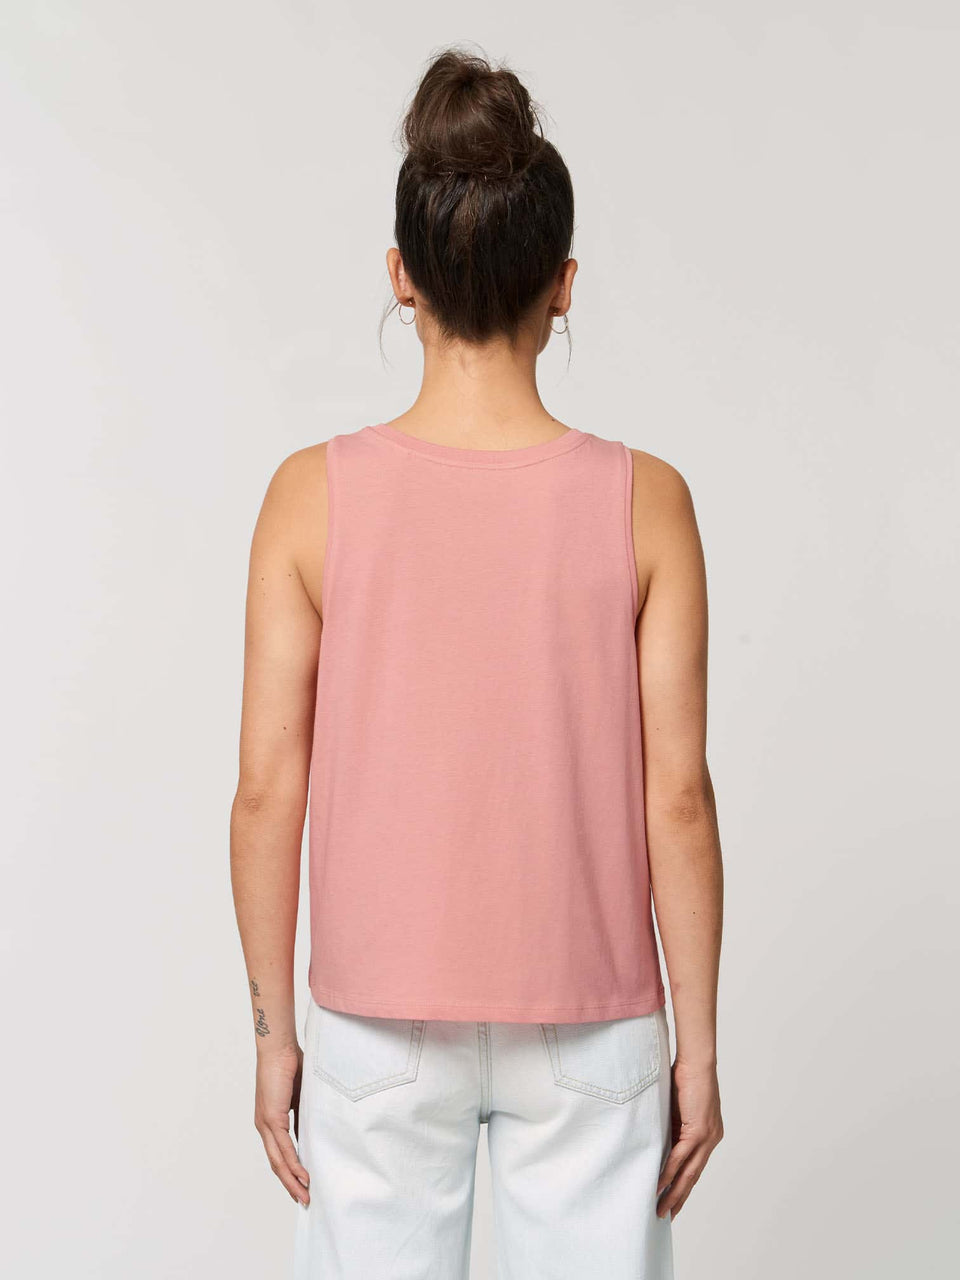 Bufo Alvarius Made To Order Women Cropped Tank Top - Canyon Pink